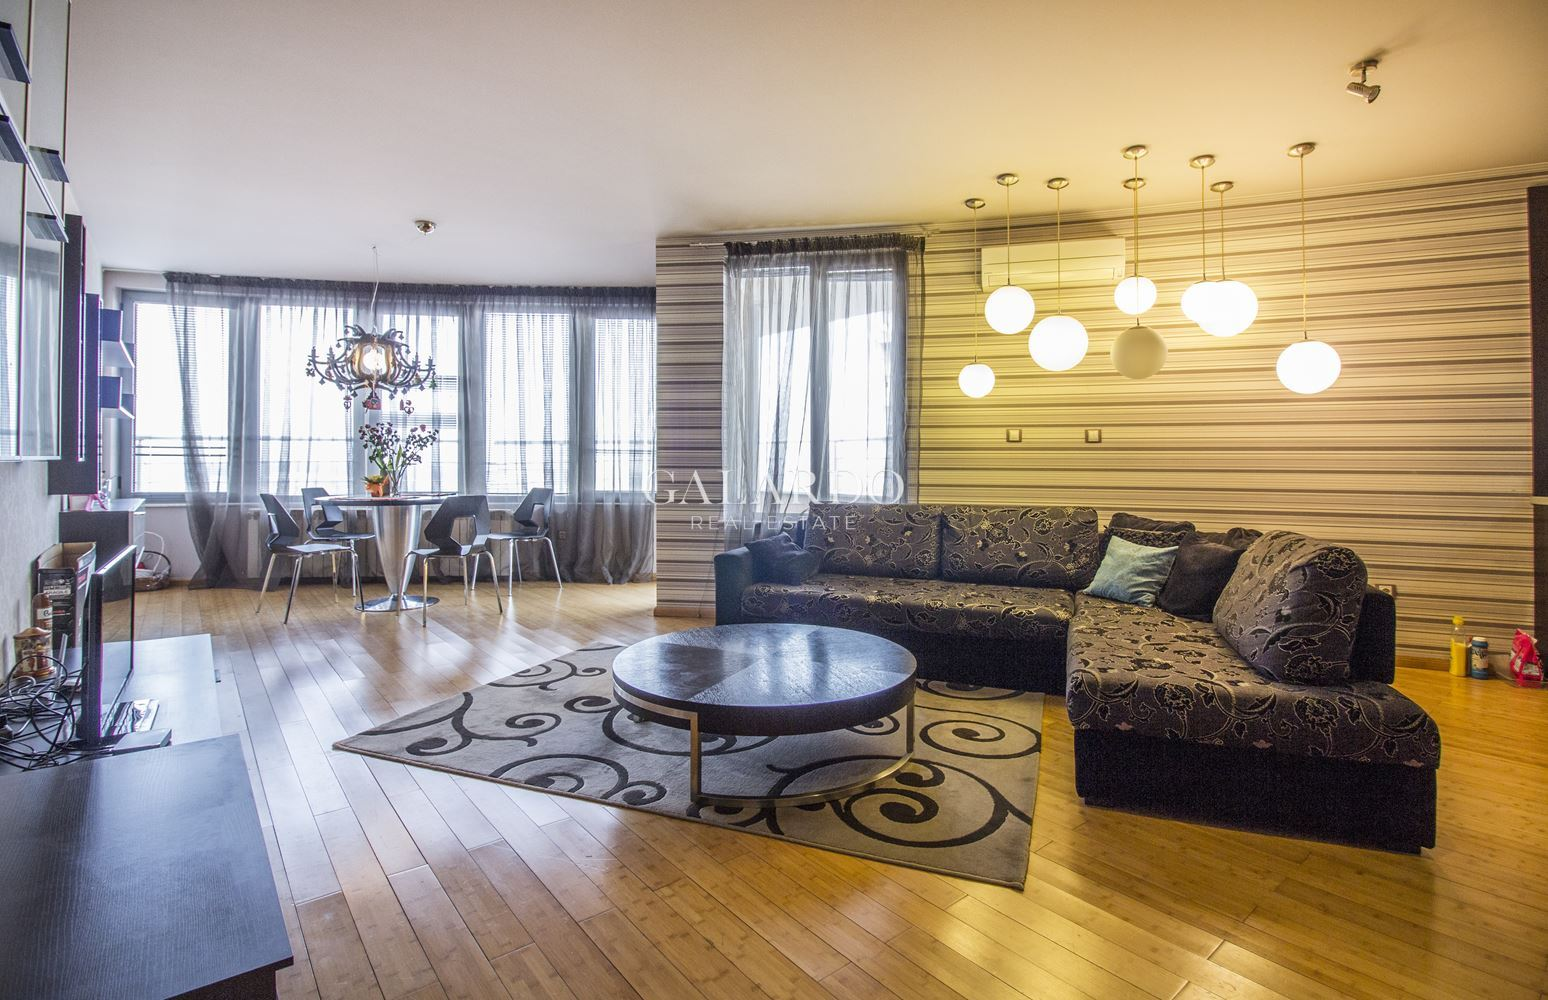 One bedroom panoramic apartment for rent near metro station